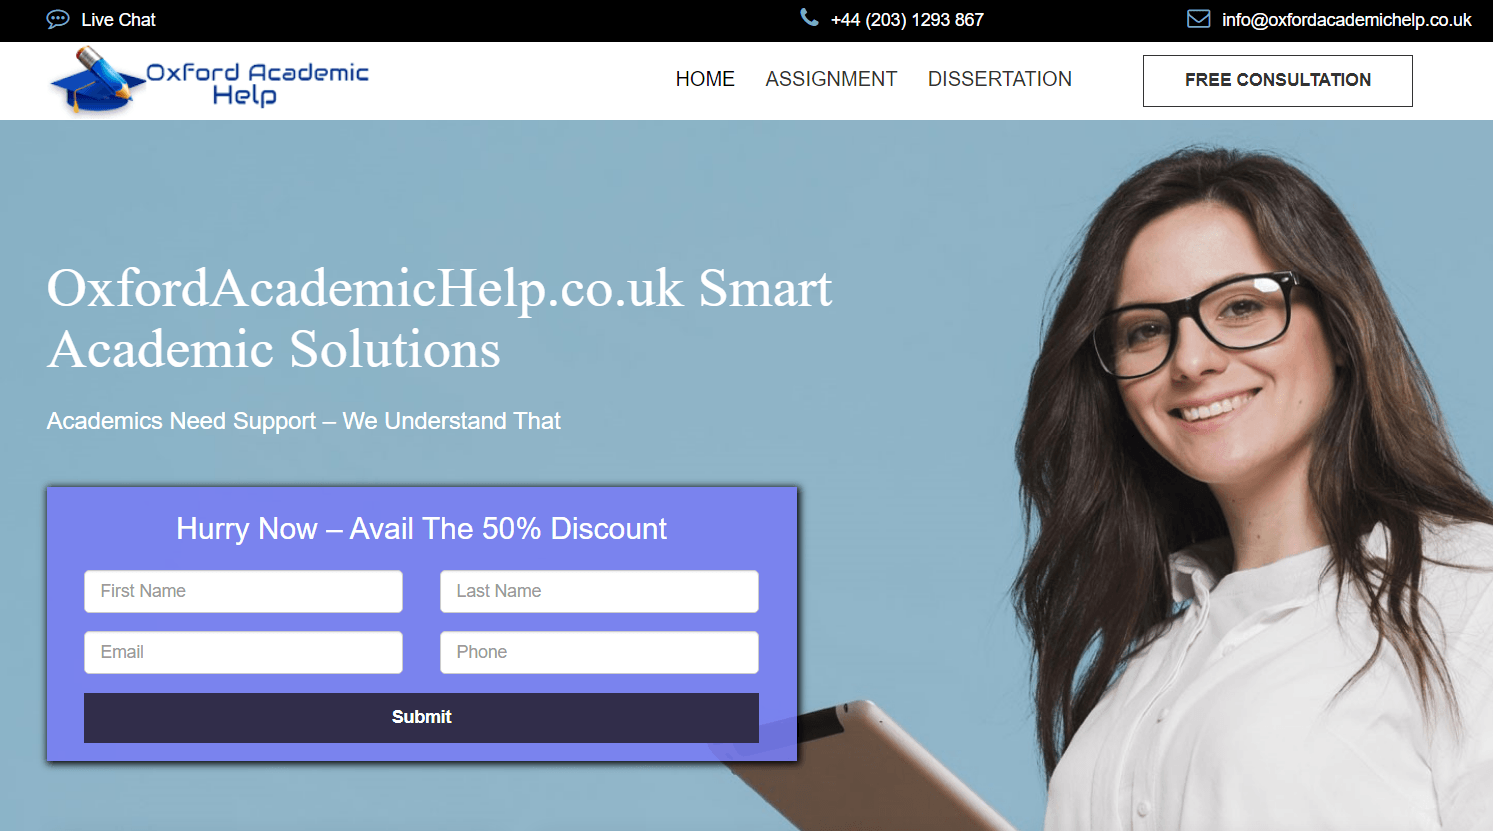 oxfordacademichelp.co.uk